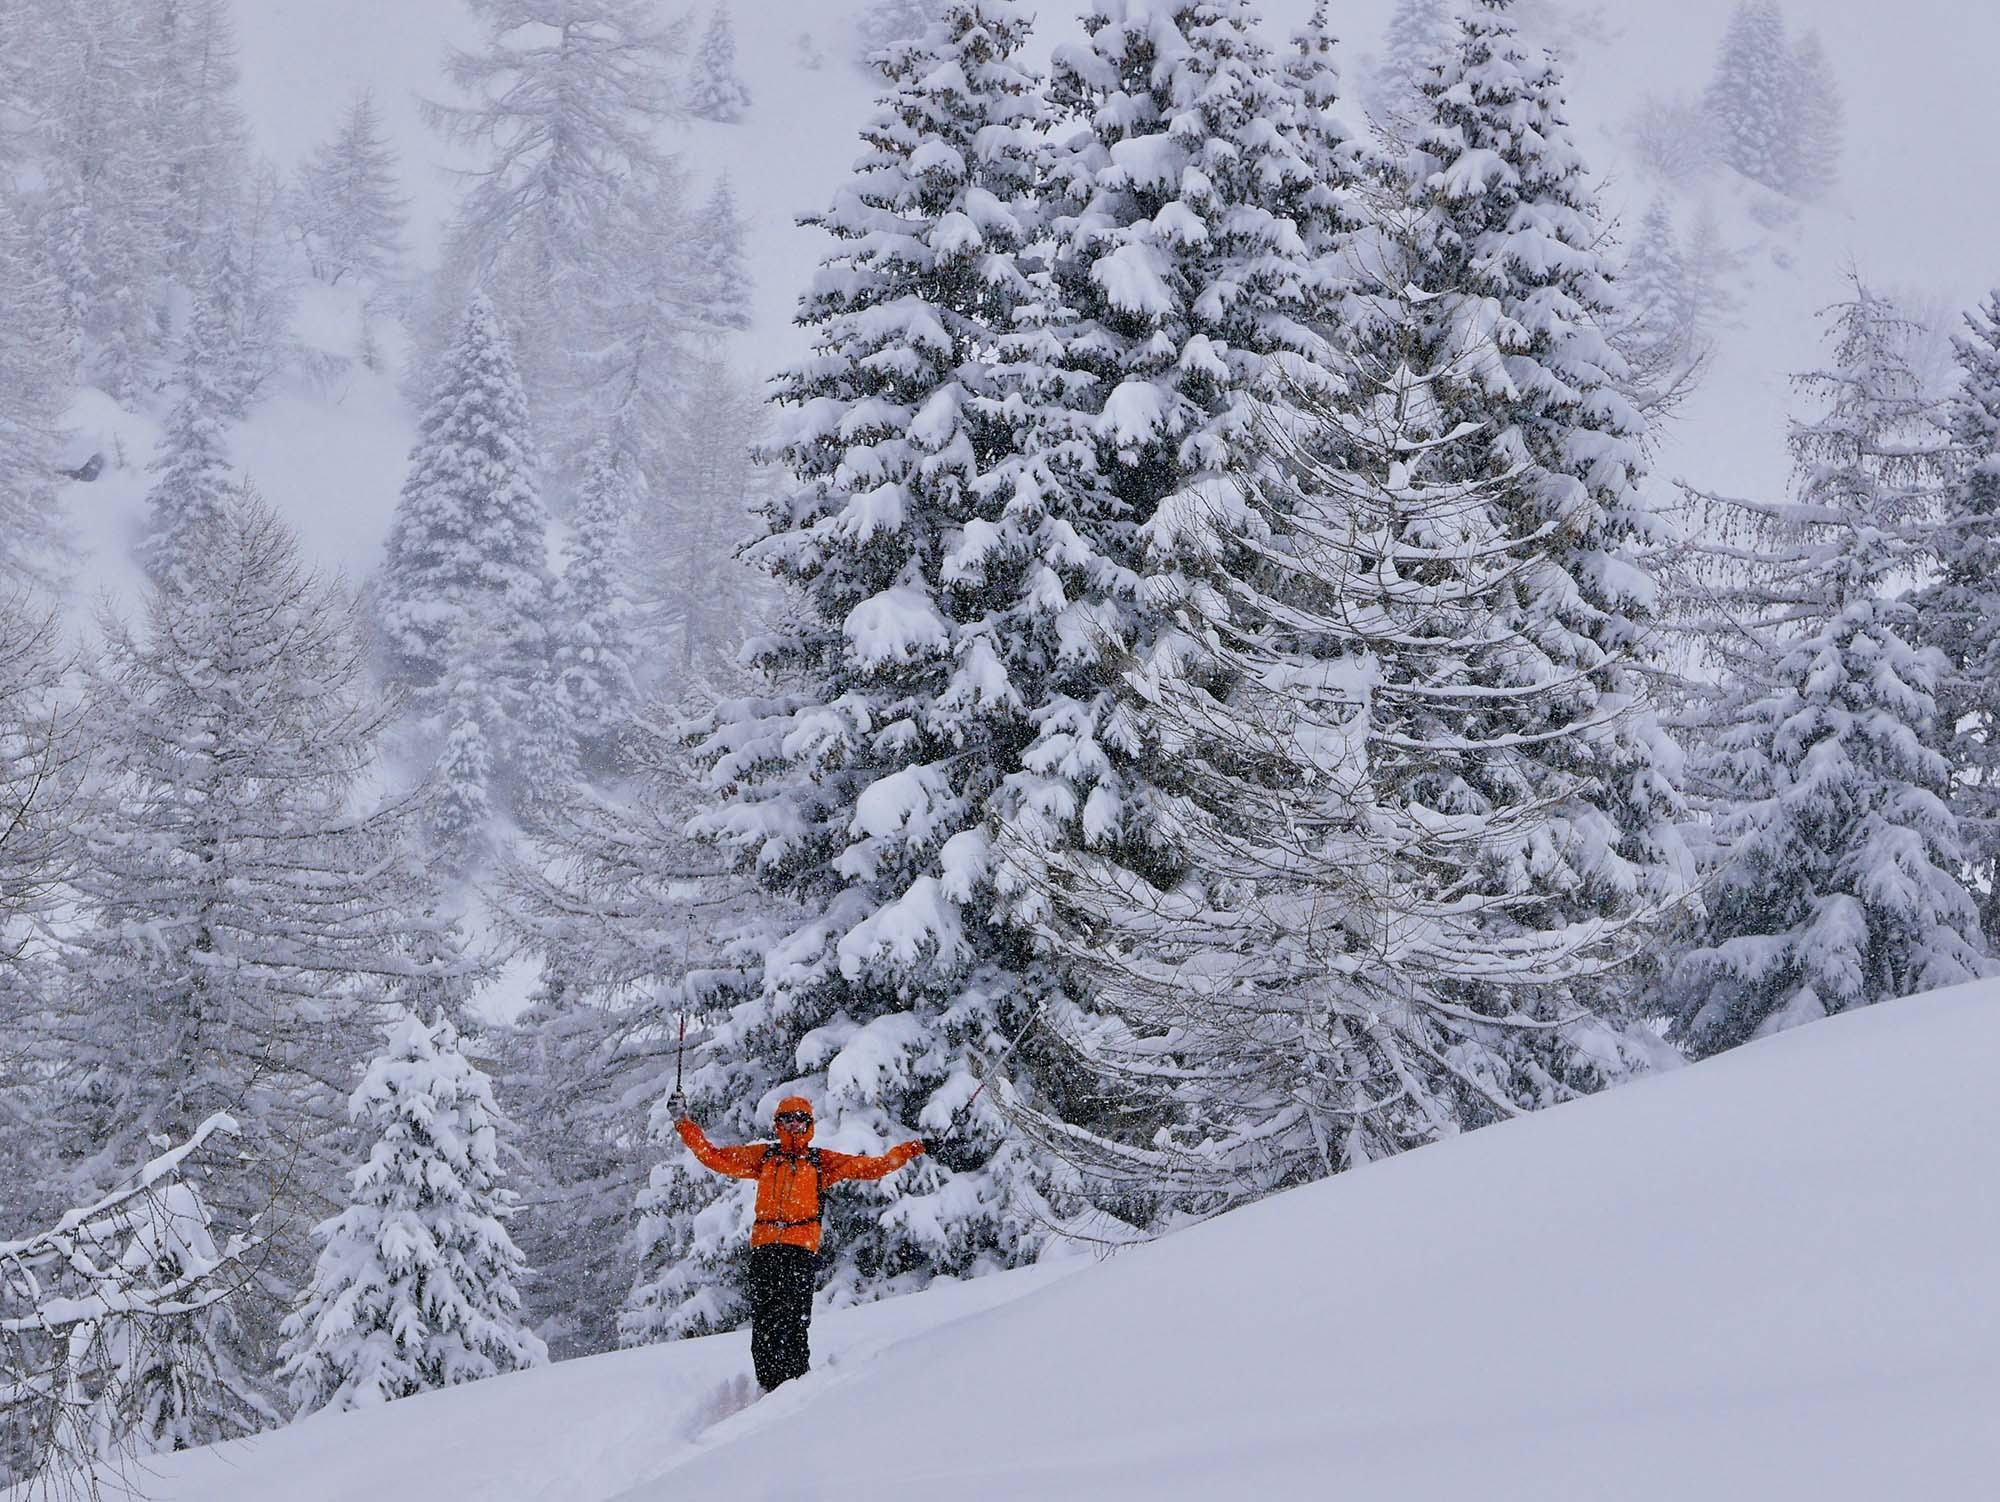 Backcountry snowboarding in East Tyrol